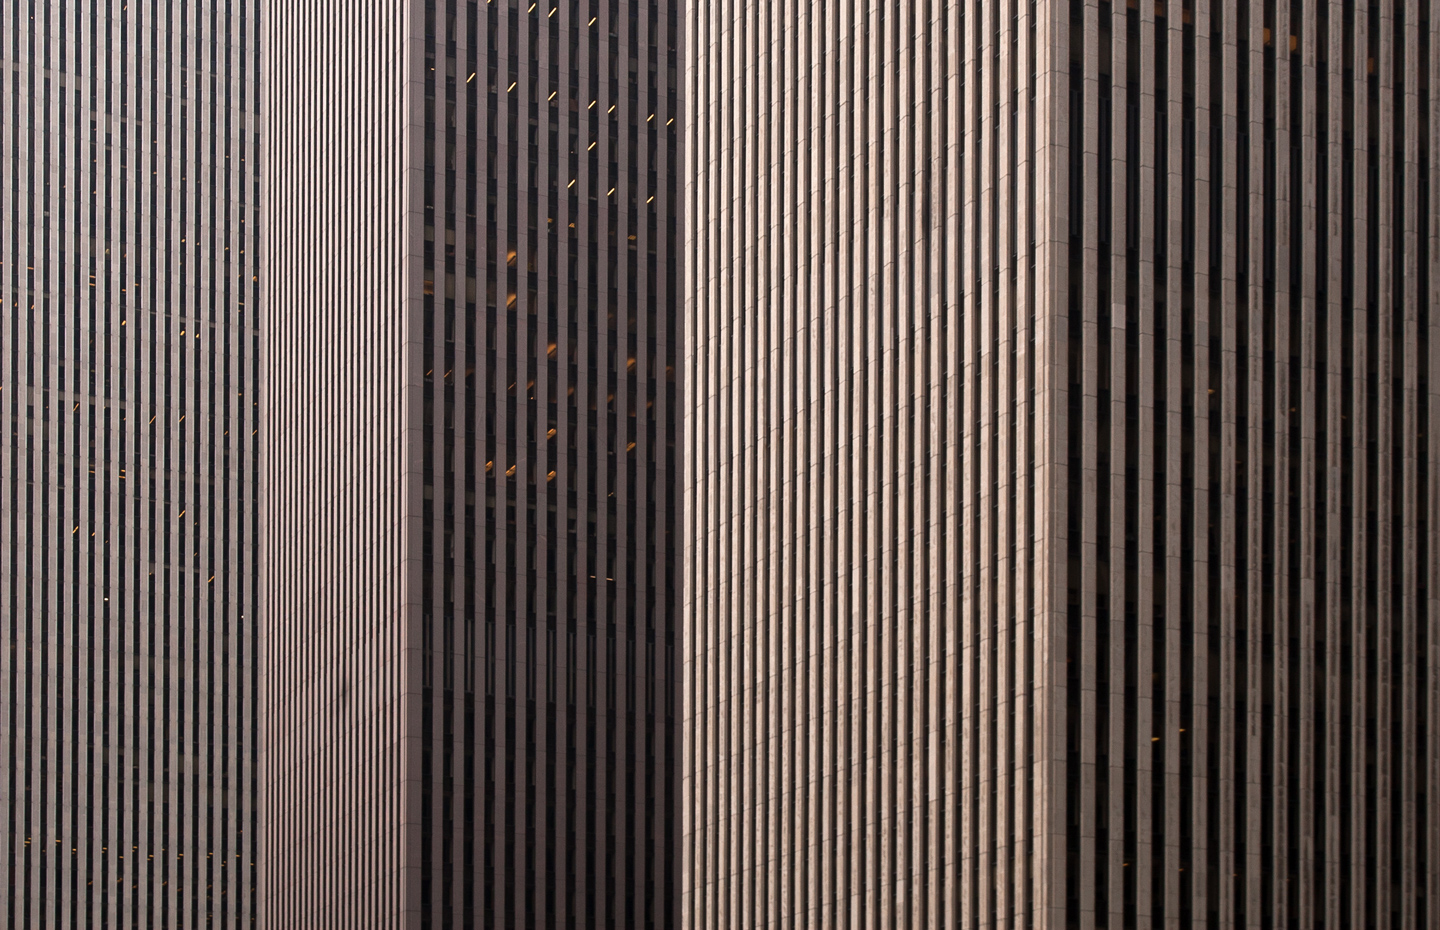 Skyscrapers facades in Manhattan